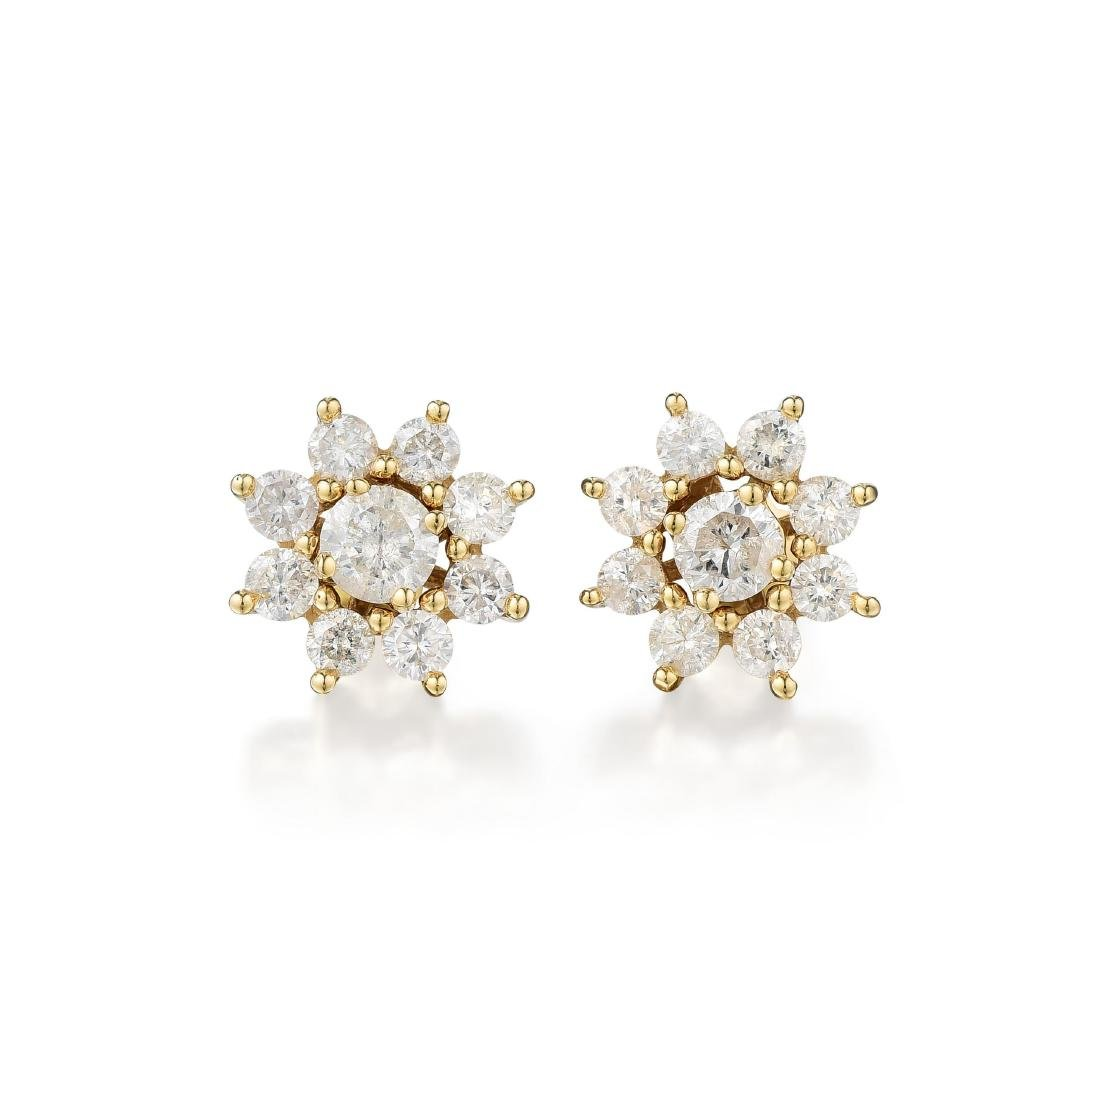 A Pair of 14K Gold Diamond Earrings